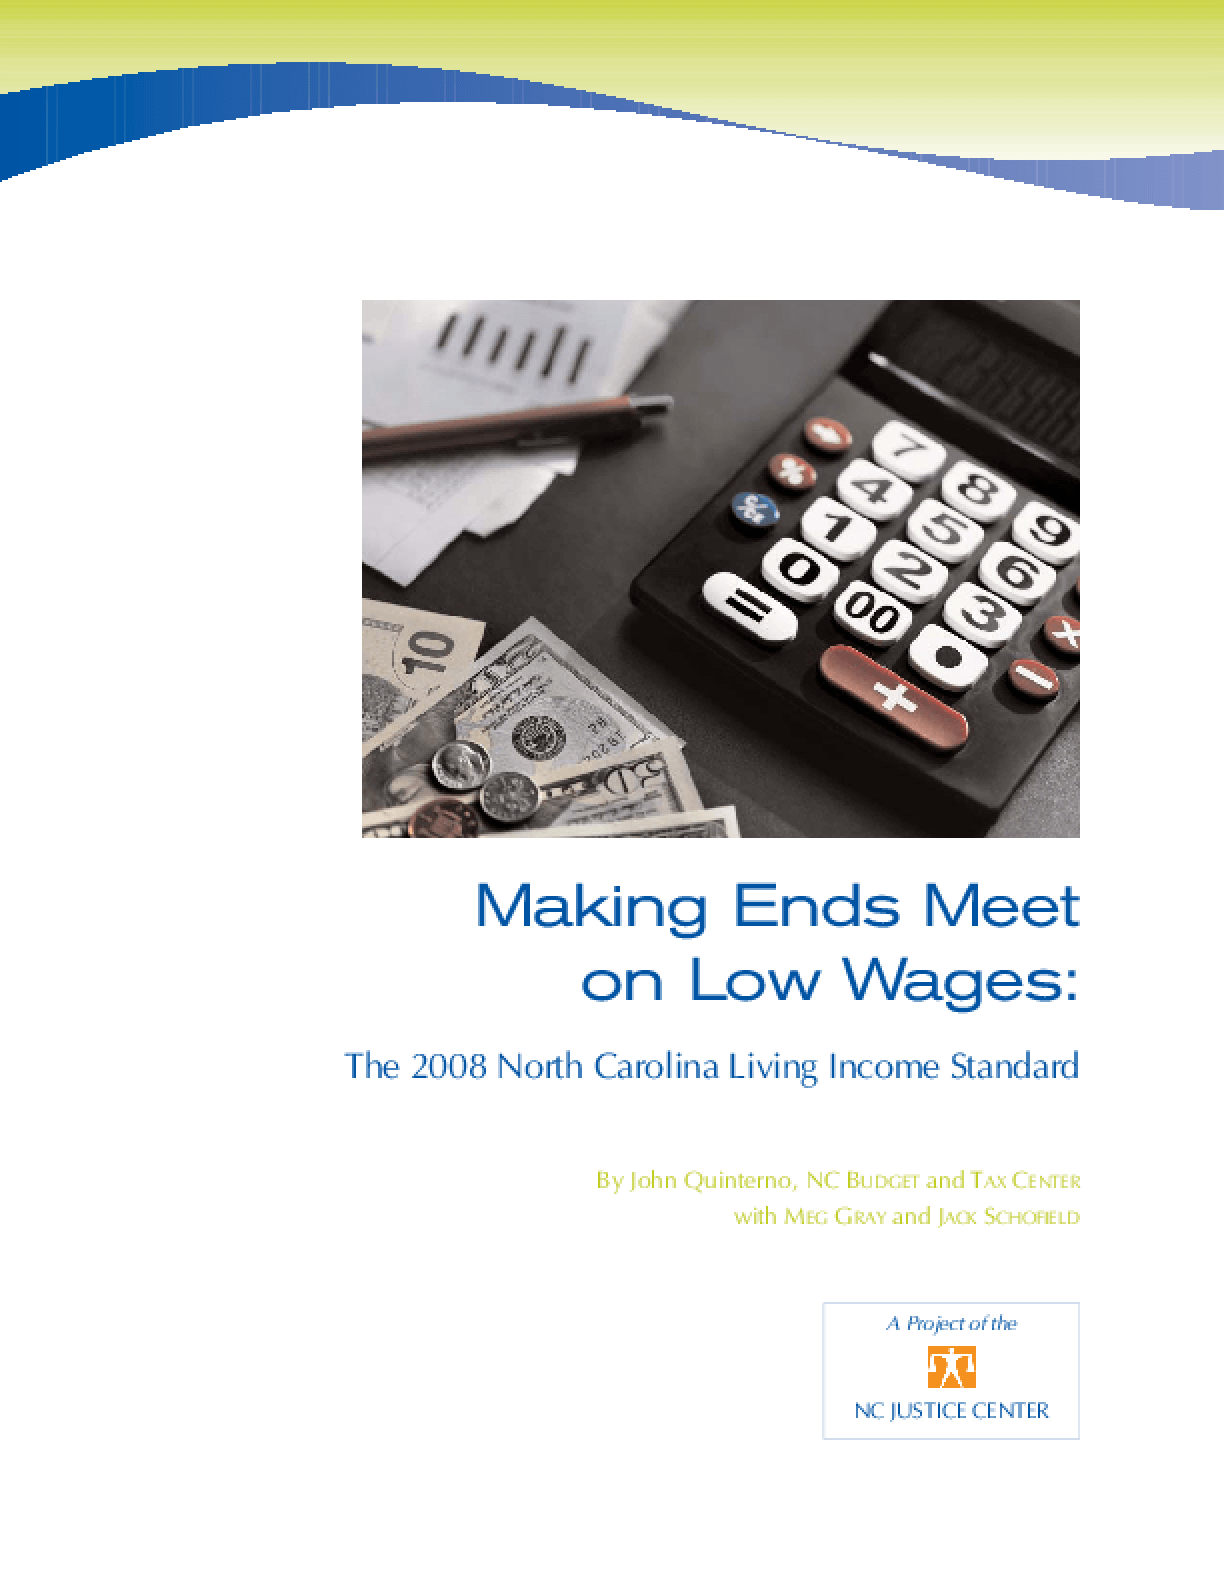 Making Ends Meet on Low Wages: The 2008 North Carolina Living Income Standard